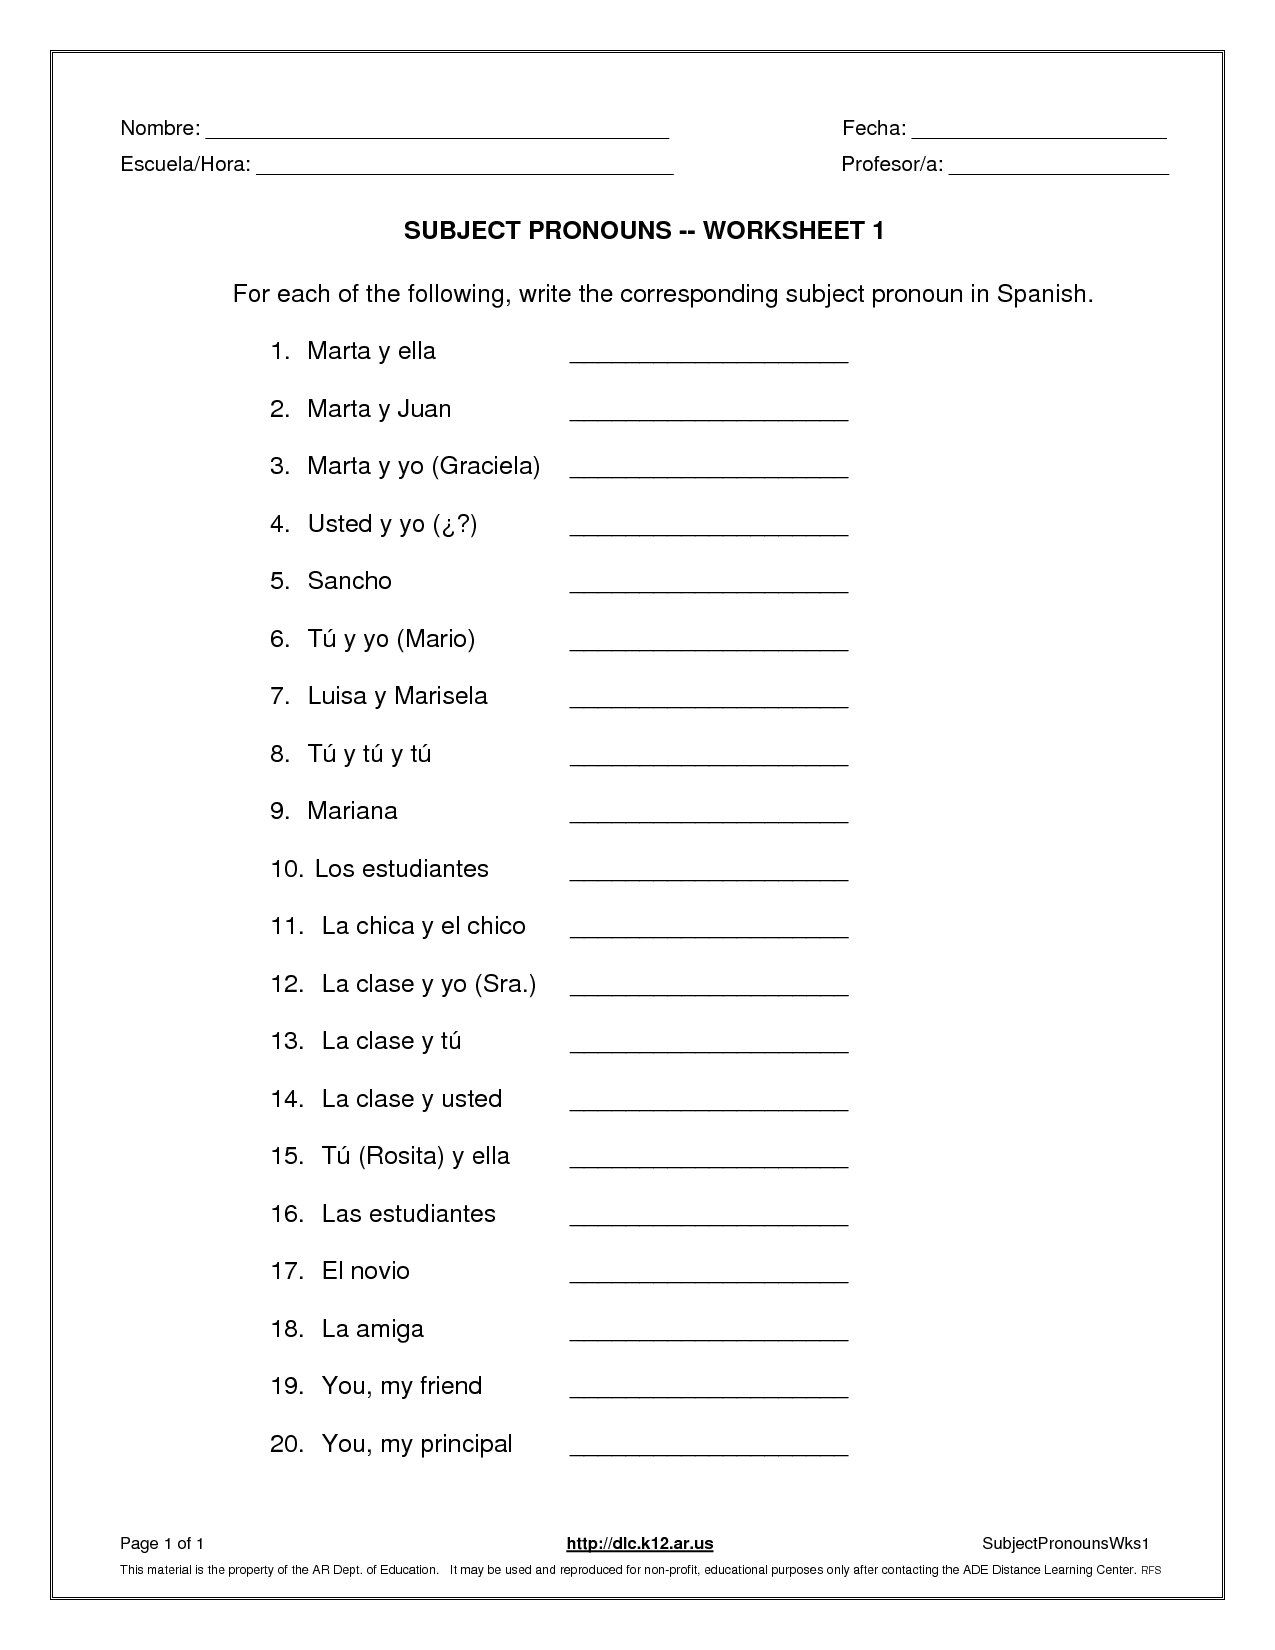 A Subject Pronouns Worksheet 1 Spanish Answer Key Is A Few